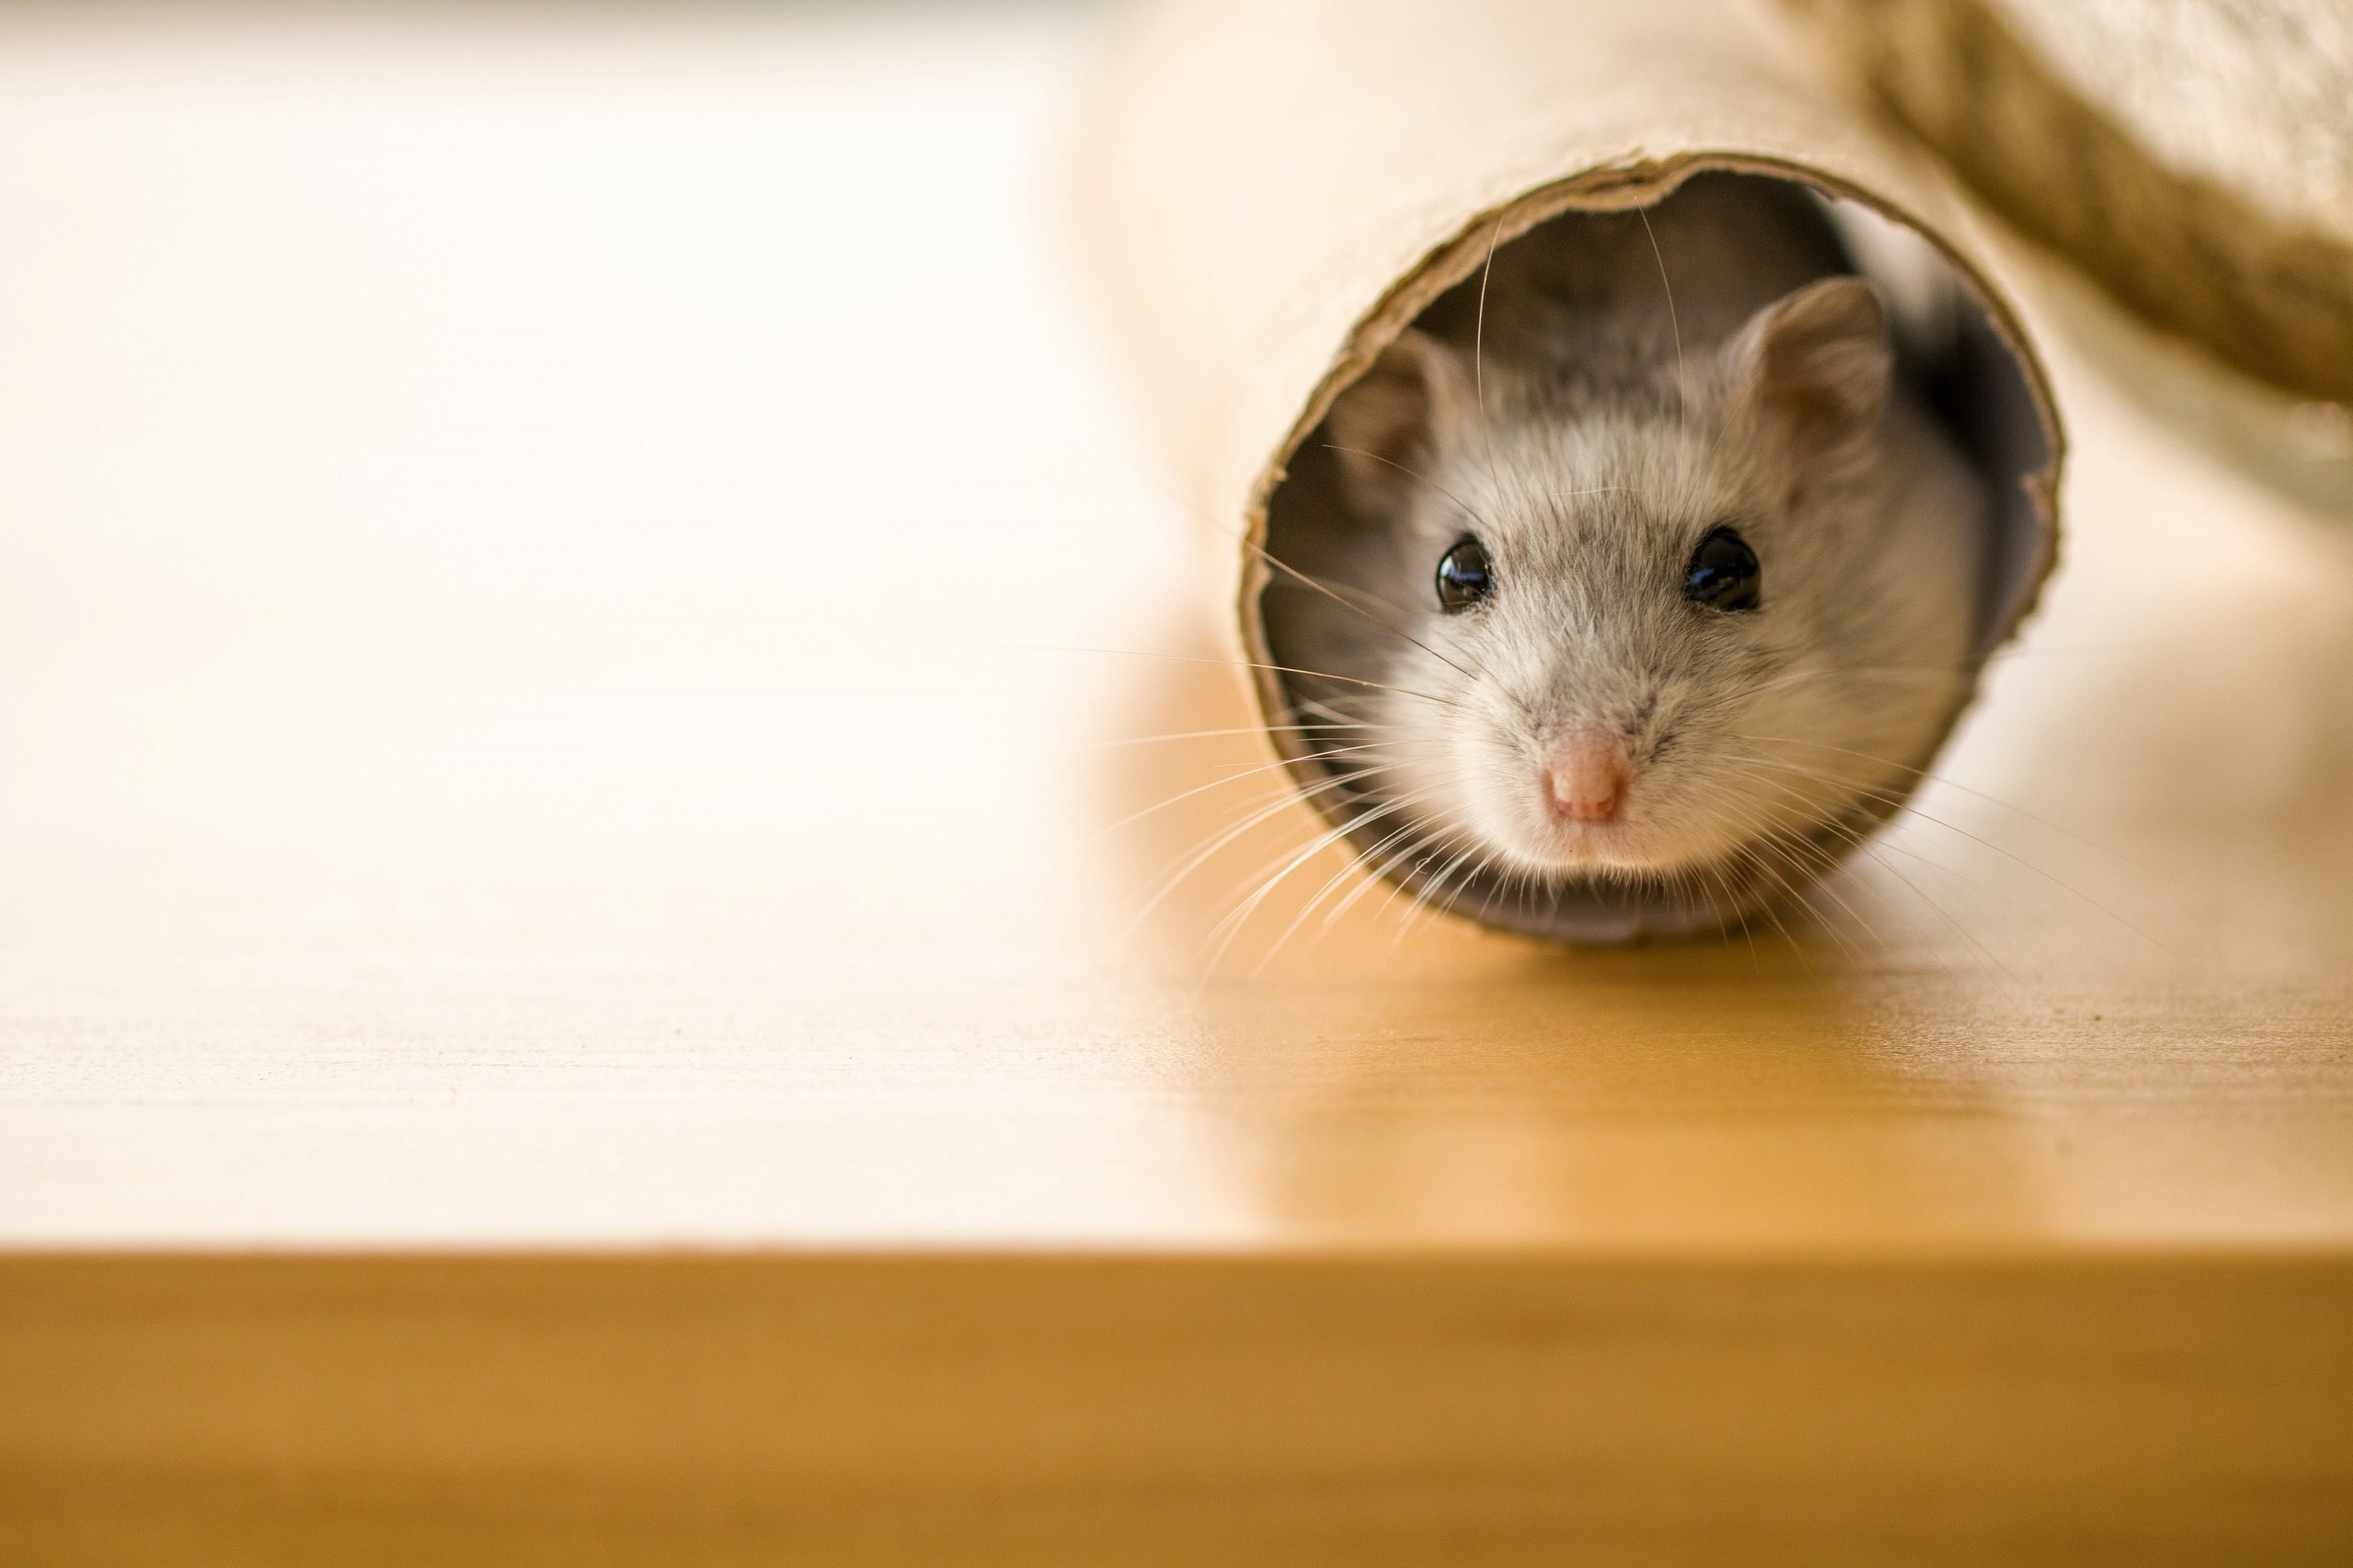 Mouse in a tube